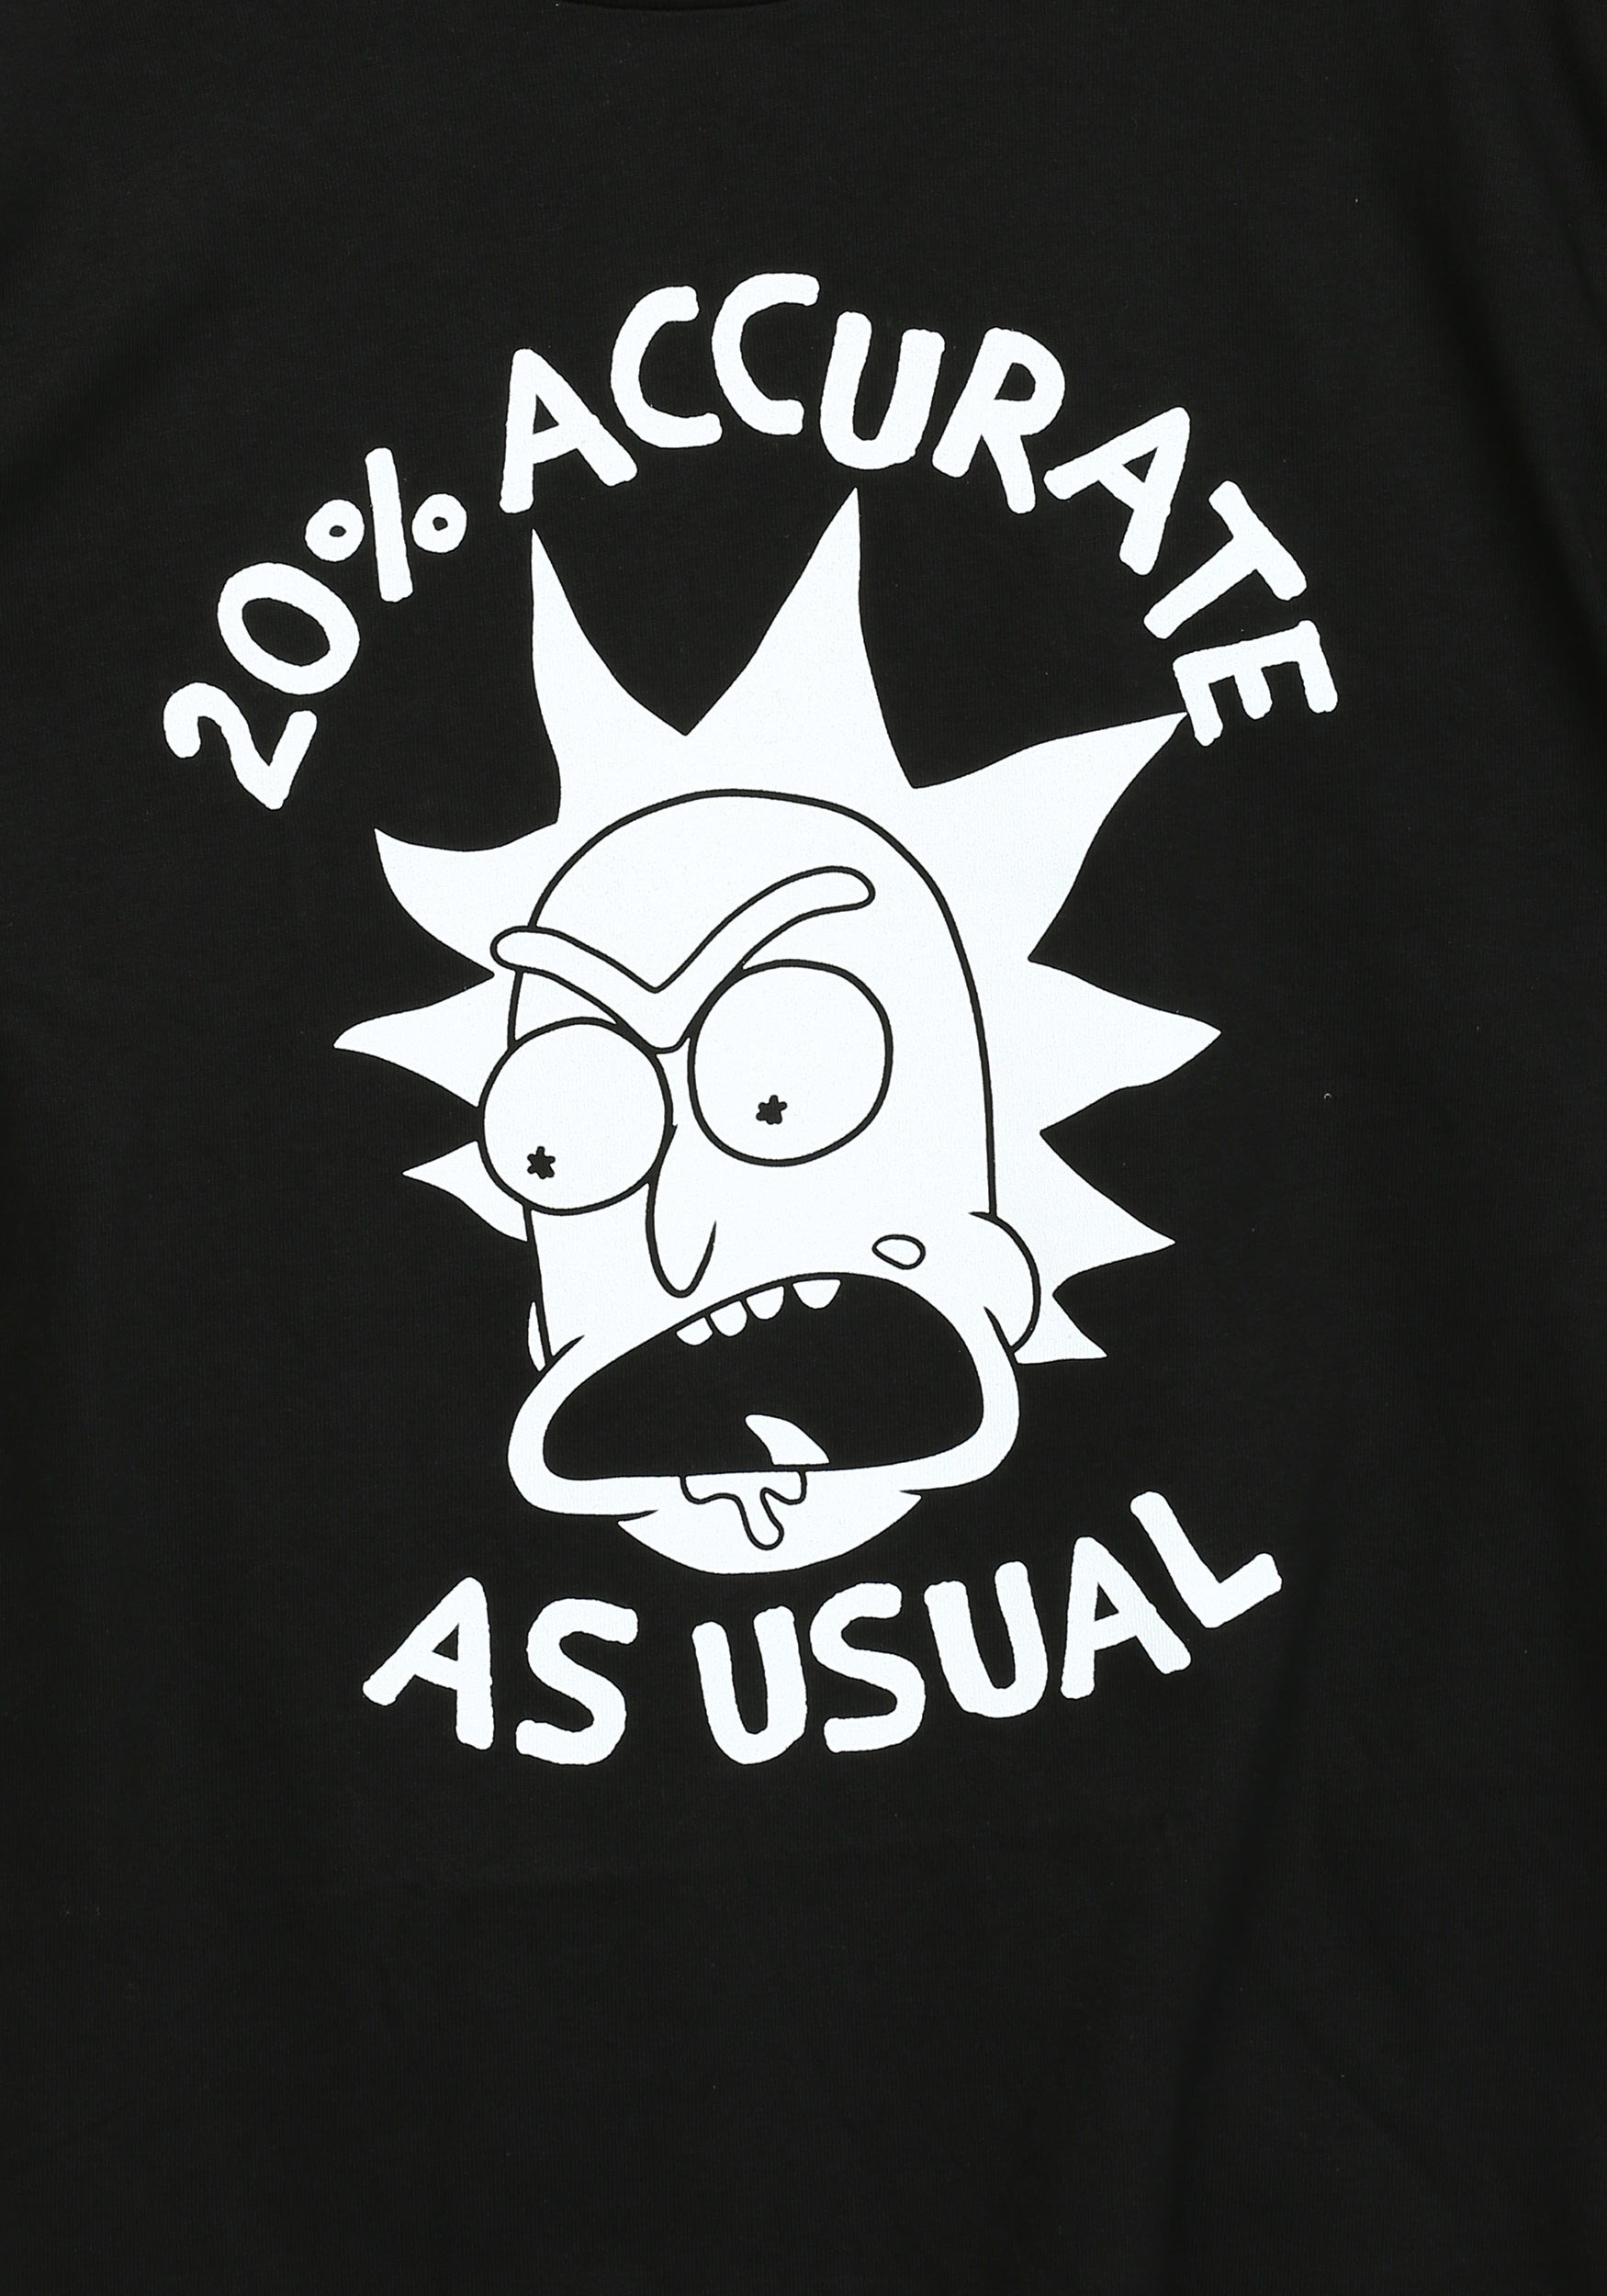 Yugioh Wallpaper For Iphone Rick And Morty 20 Percent Accurate T Shirt